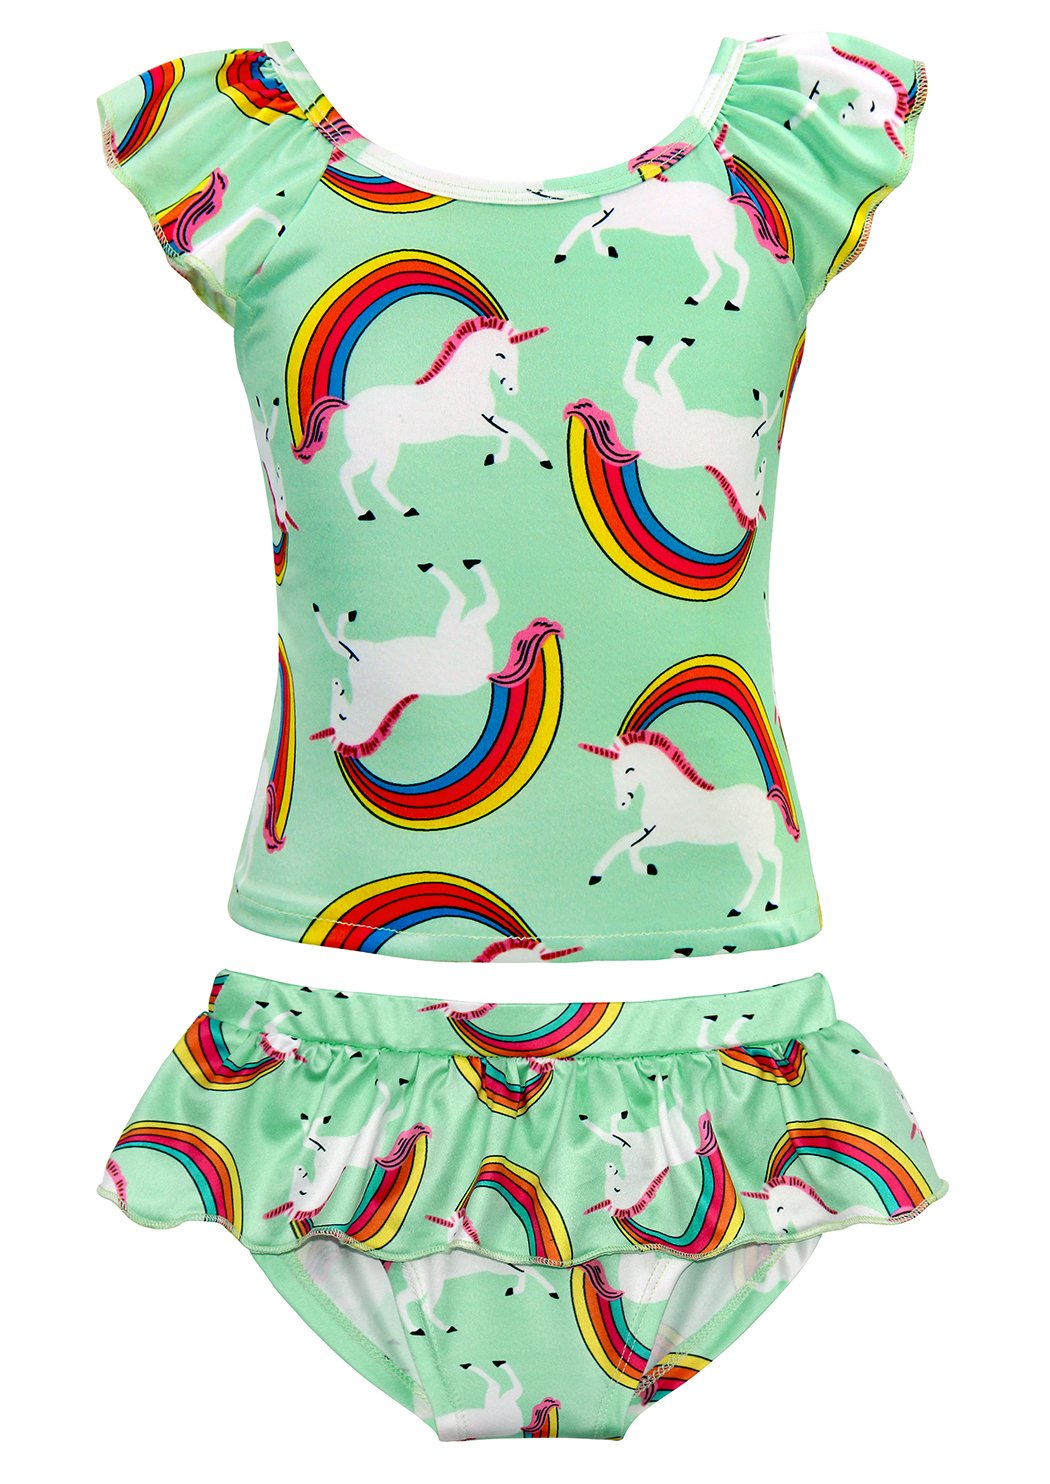 Cotrio Unicorn Swimsuit Girls Rainbow Two Pieces Swimwear Bathing Suit Bikinis